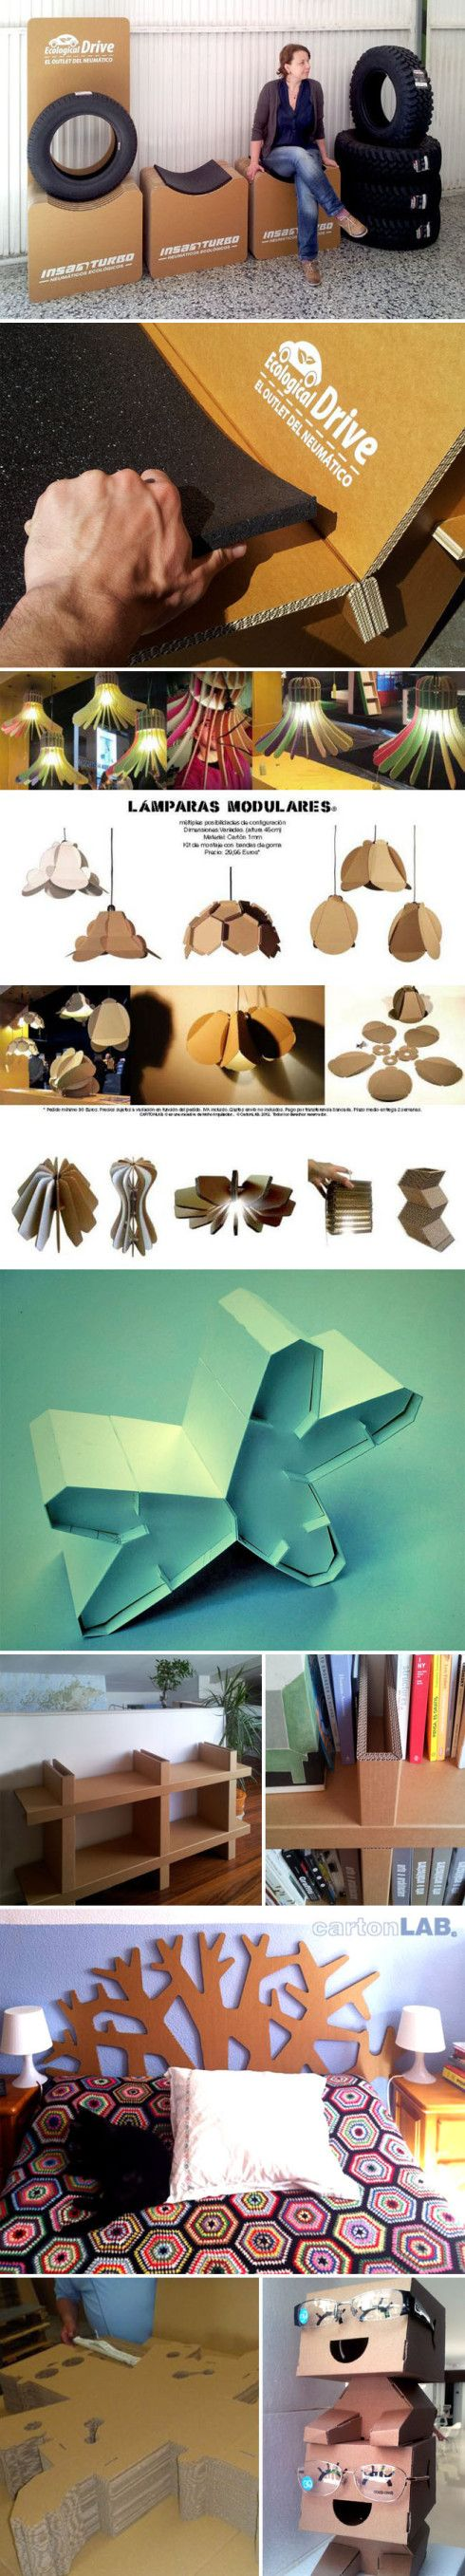 Cardboard furniture techniques how to achieve strength growing up - 170 Best Cardboard Images On Pinterest Cardboard Furniture Cartonnage And Diy